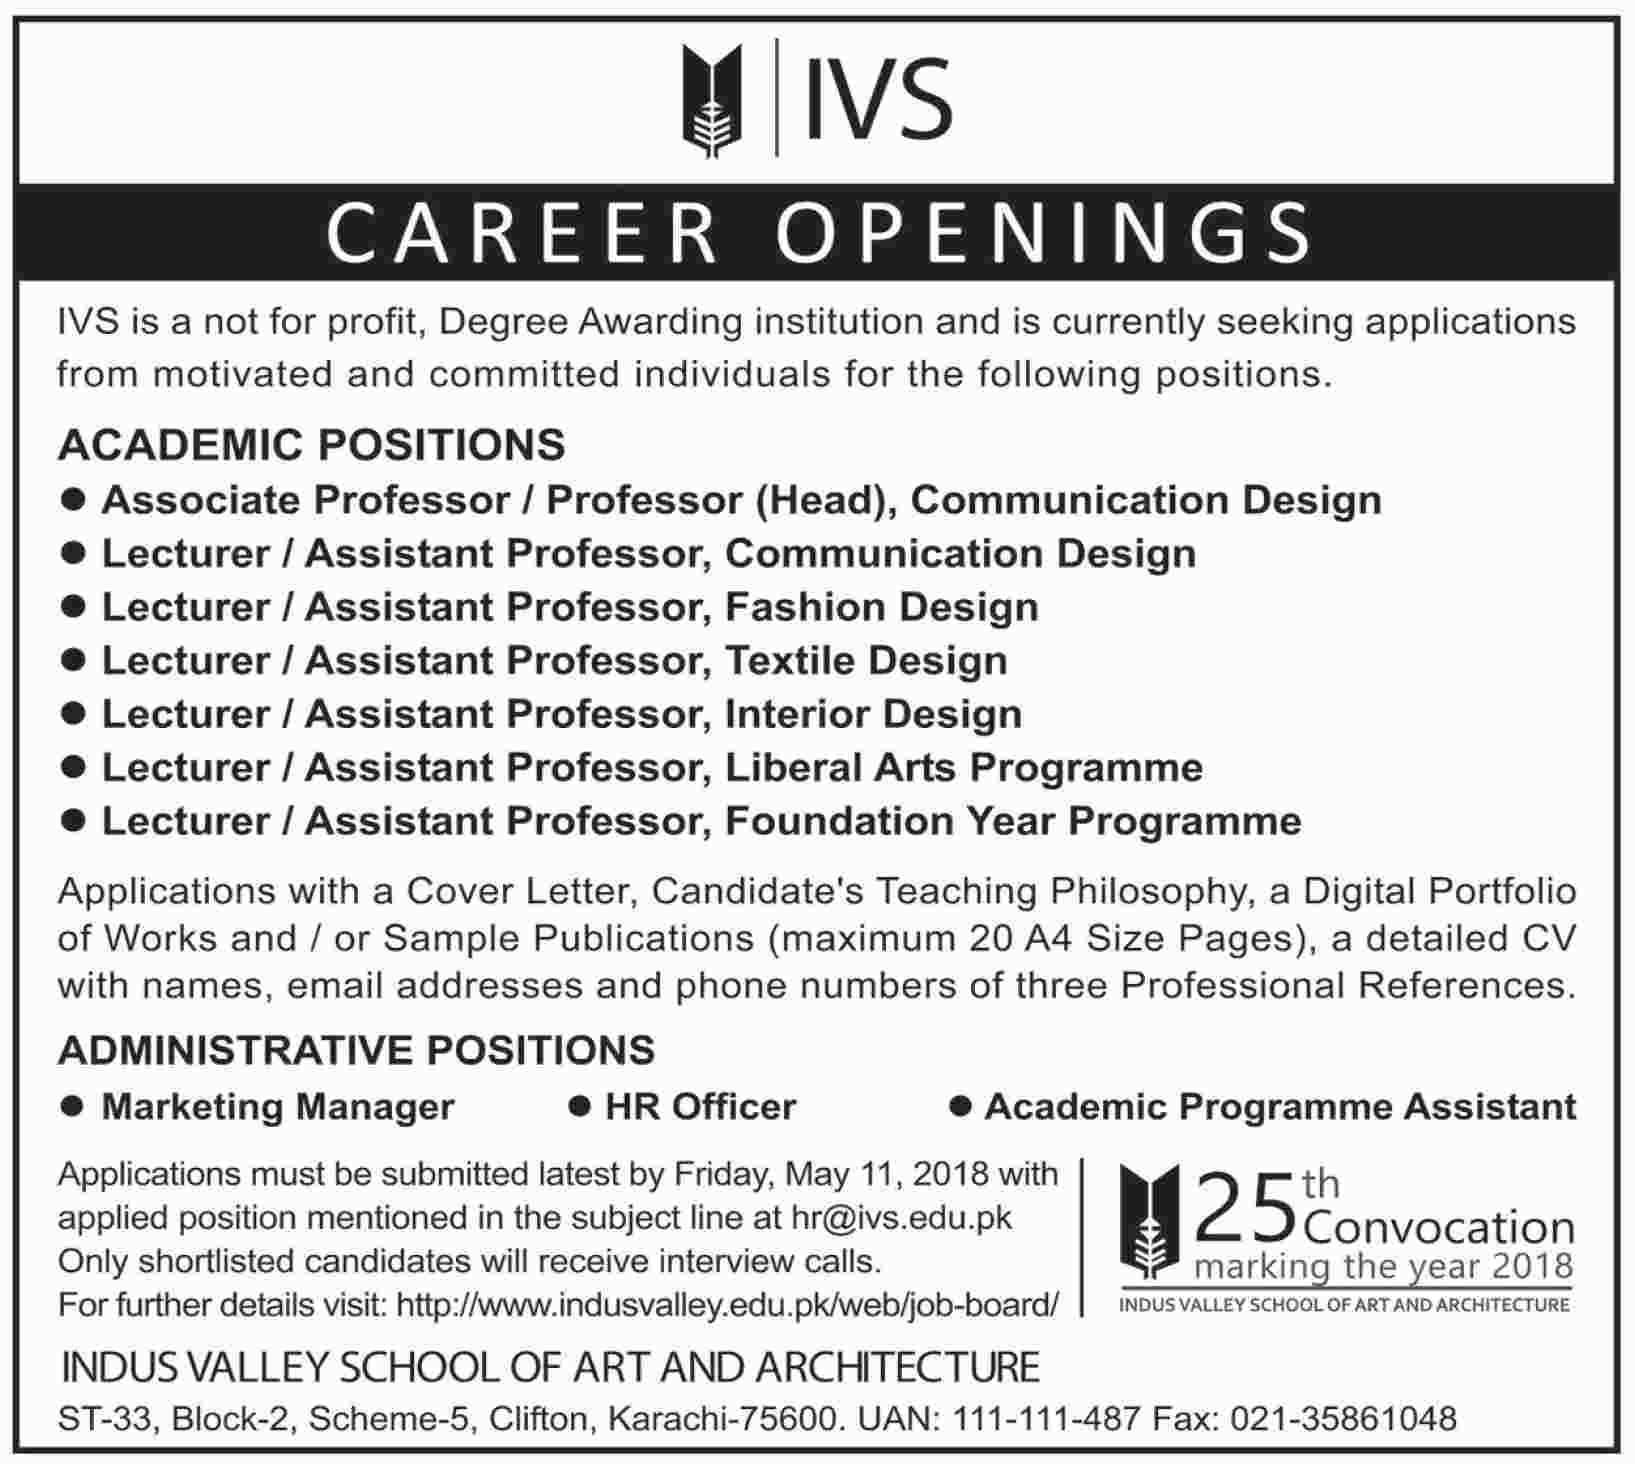 Jobs in Indus Valley School of Art and Architecture 22 April 2018